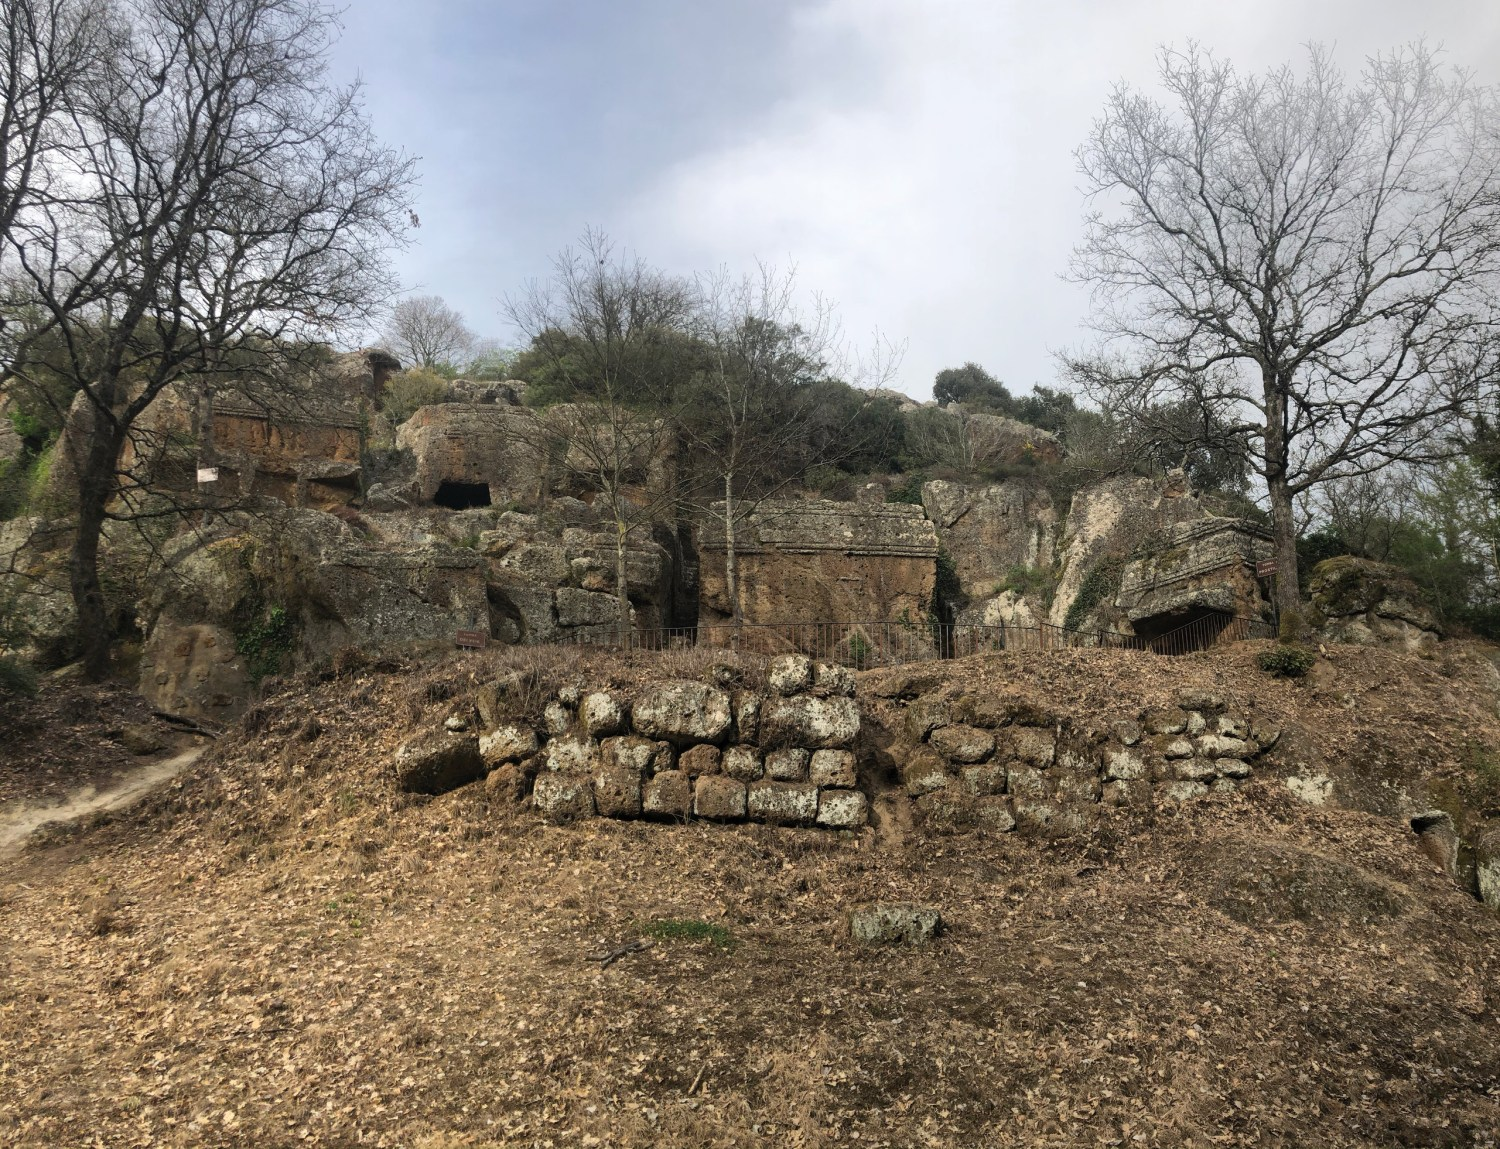 ABOVE A city of the dead: the tombs that form the most striking vestige of the ancient city of Norchia have been captivating visitors for a long time. This Etruscan settlement flourished between the 6th and 5th century BC, but today much of its remains are cloaked in forest.